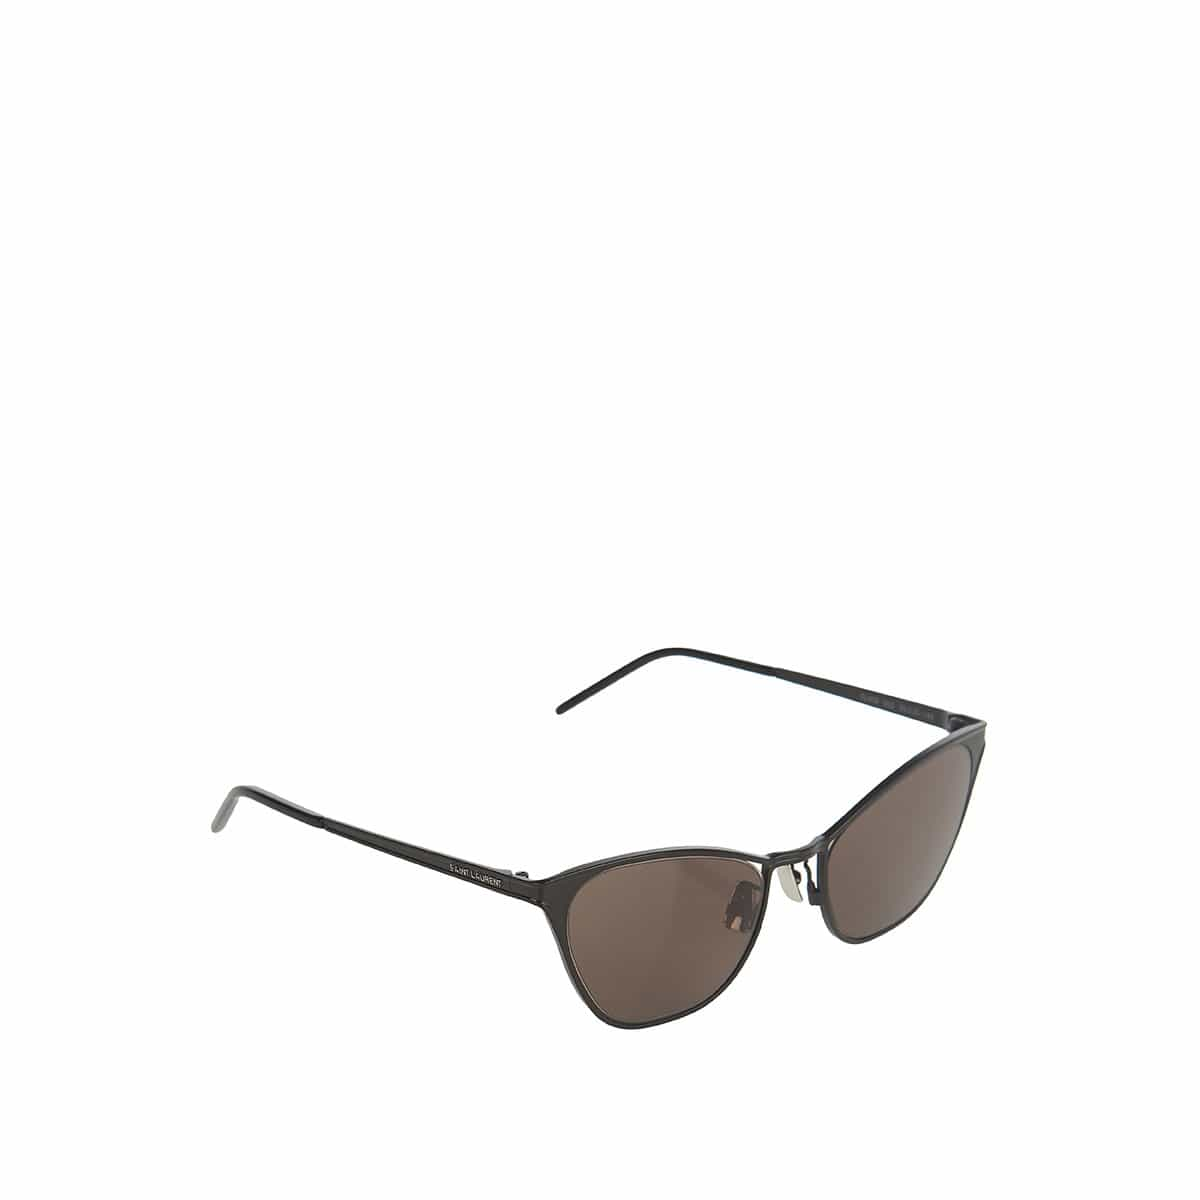 SL 409 cat-eye metal sunglasses